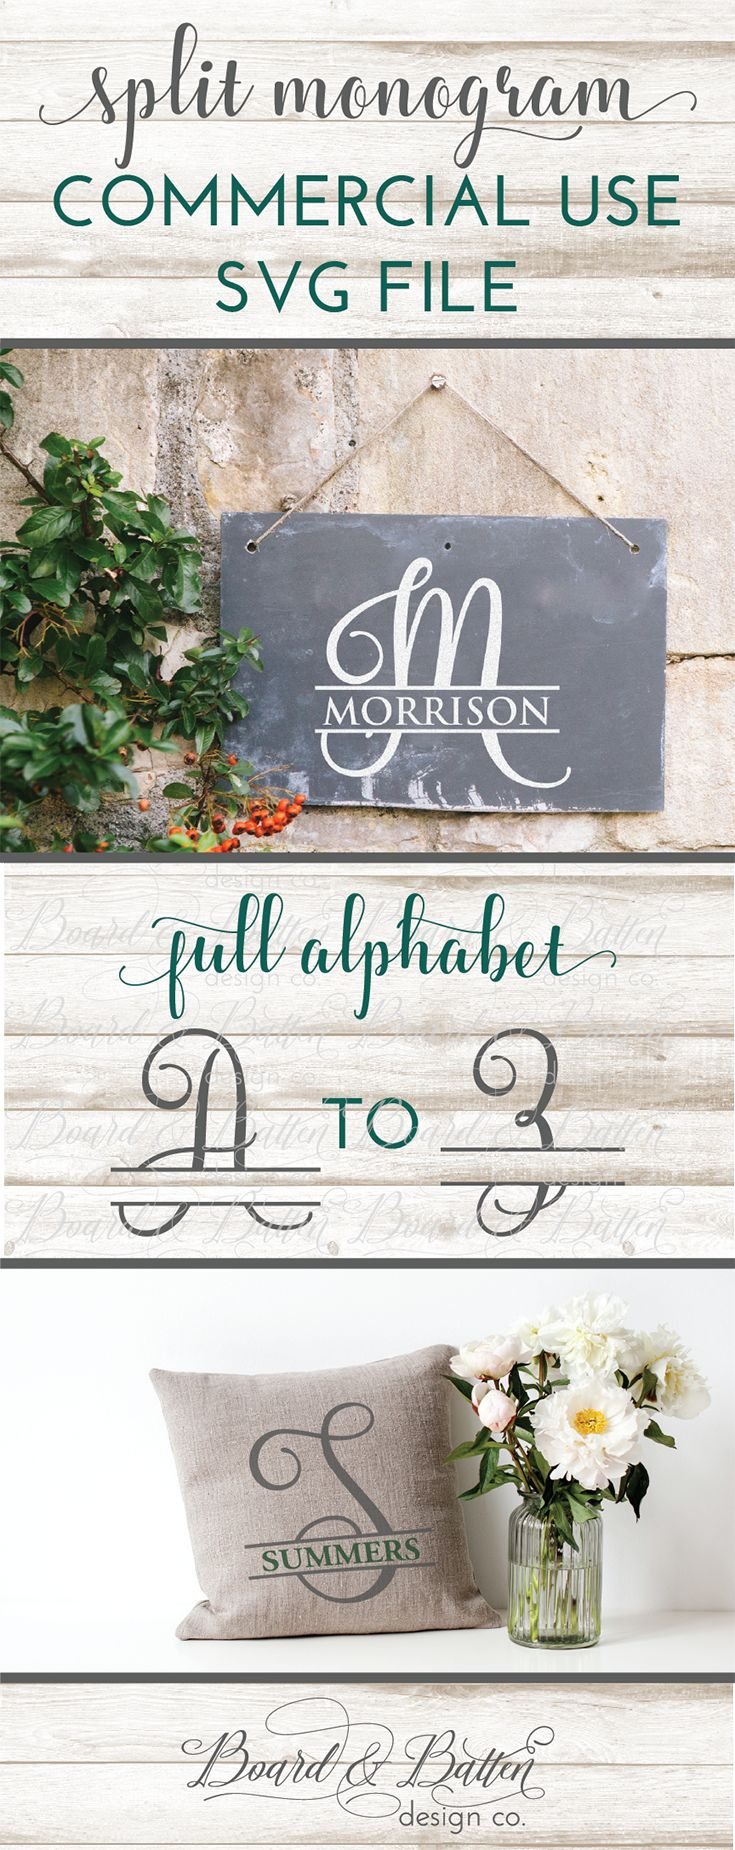 Split Monogram SVG File for Personal & Commercial Use - Split Letter Monograms are a great versatile option for personalizing anything with your Silhouette or Cricut. They make great wooden signs, throw pillows, wall decals, mailbox decals, and more!